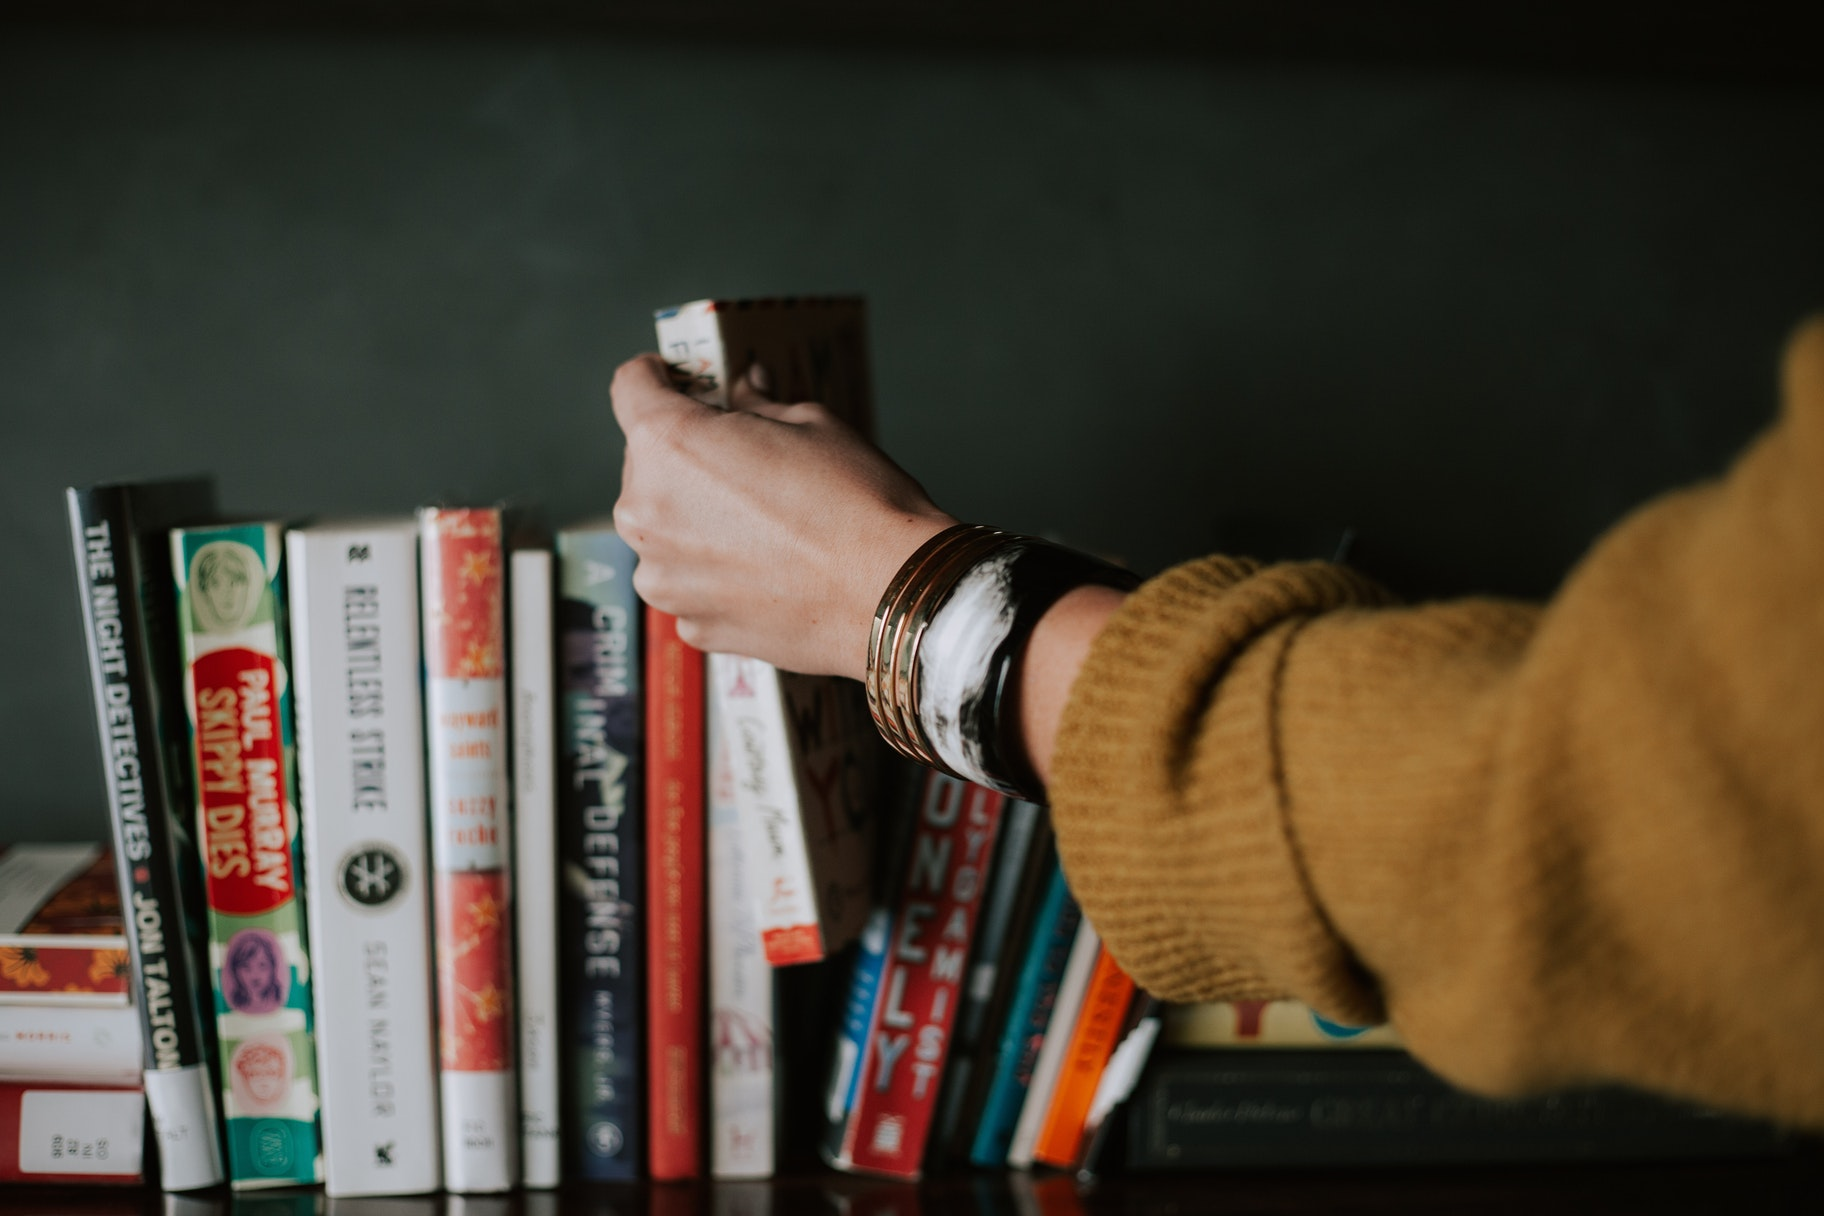 The 12 Top Business Books for Entrepreneurs Starting a Business